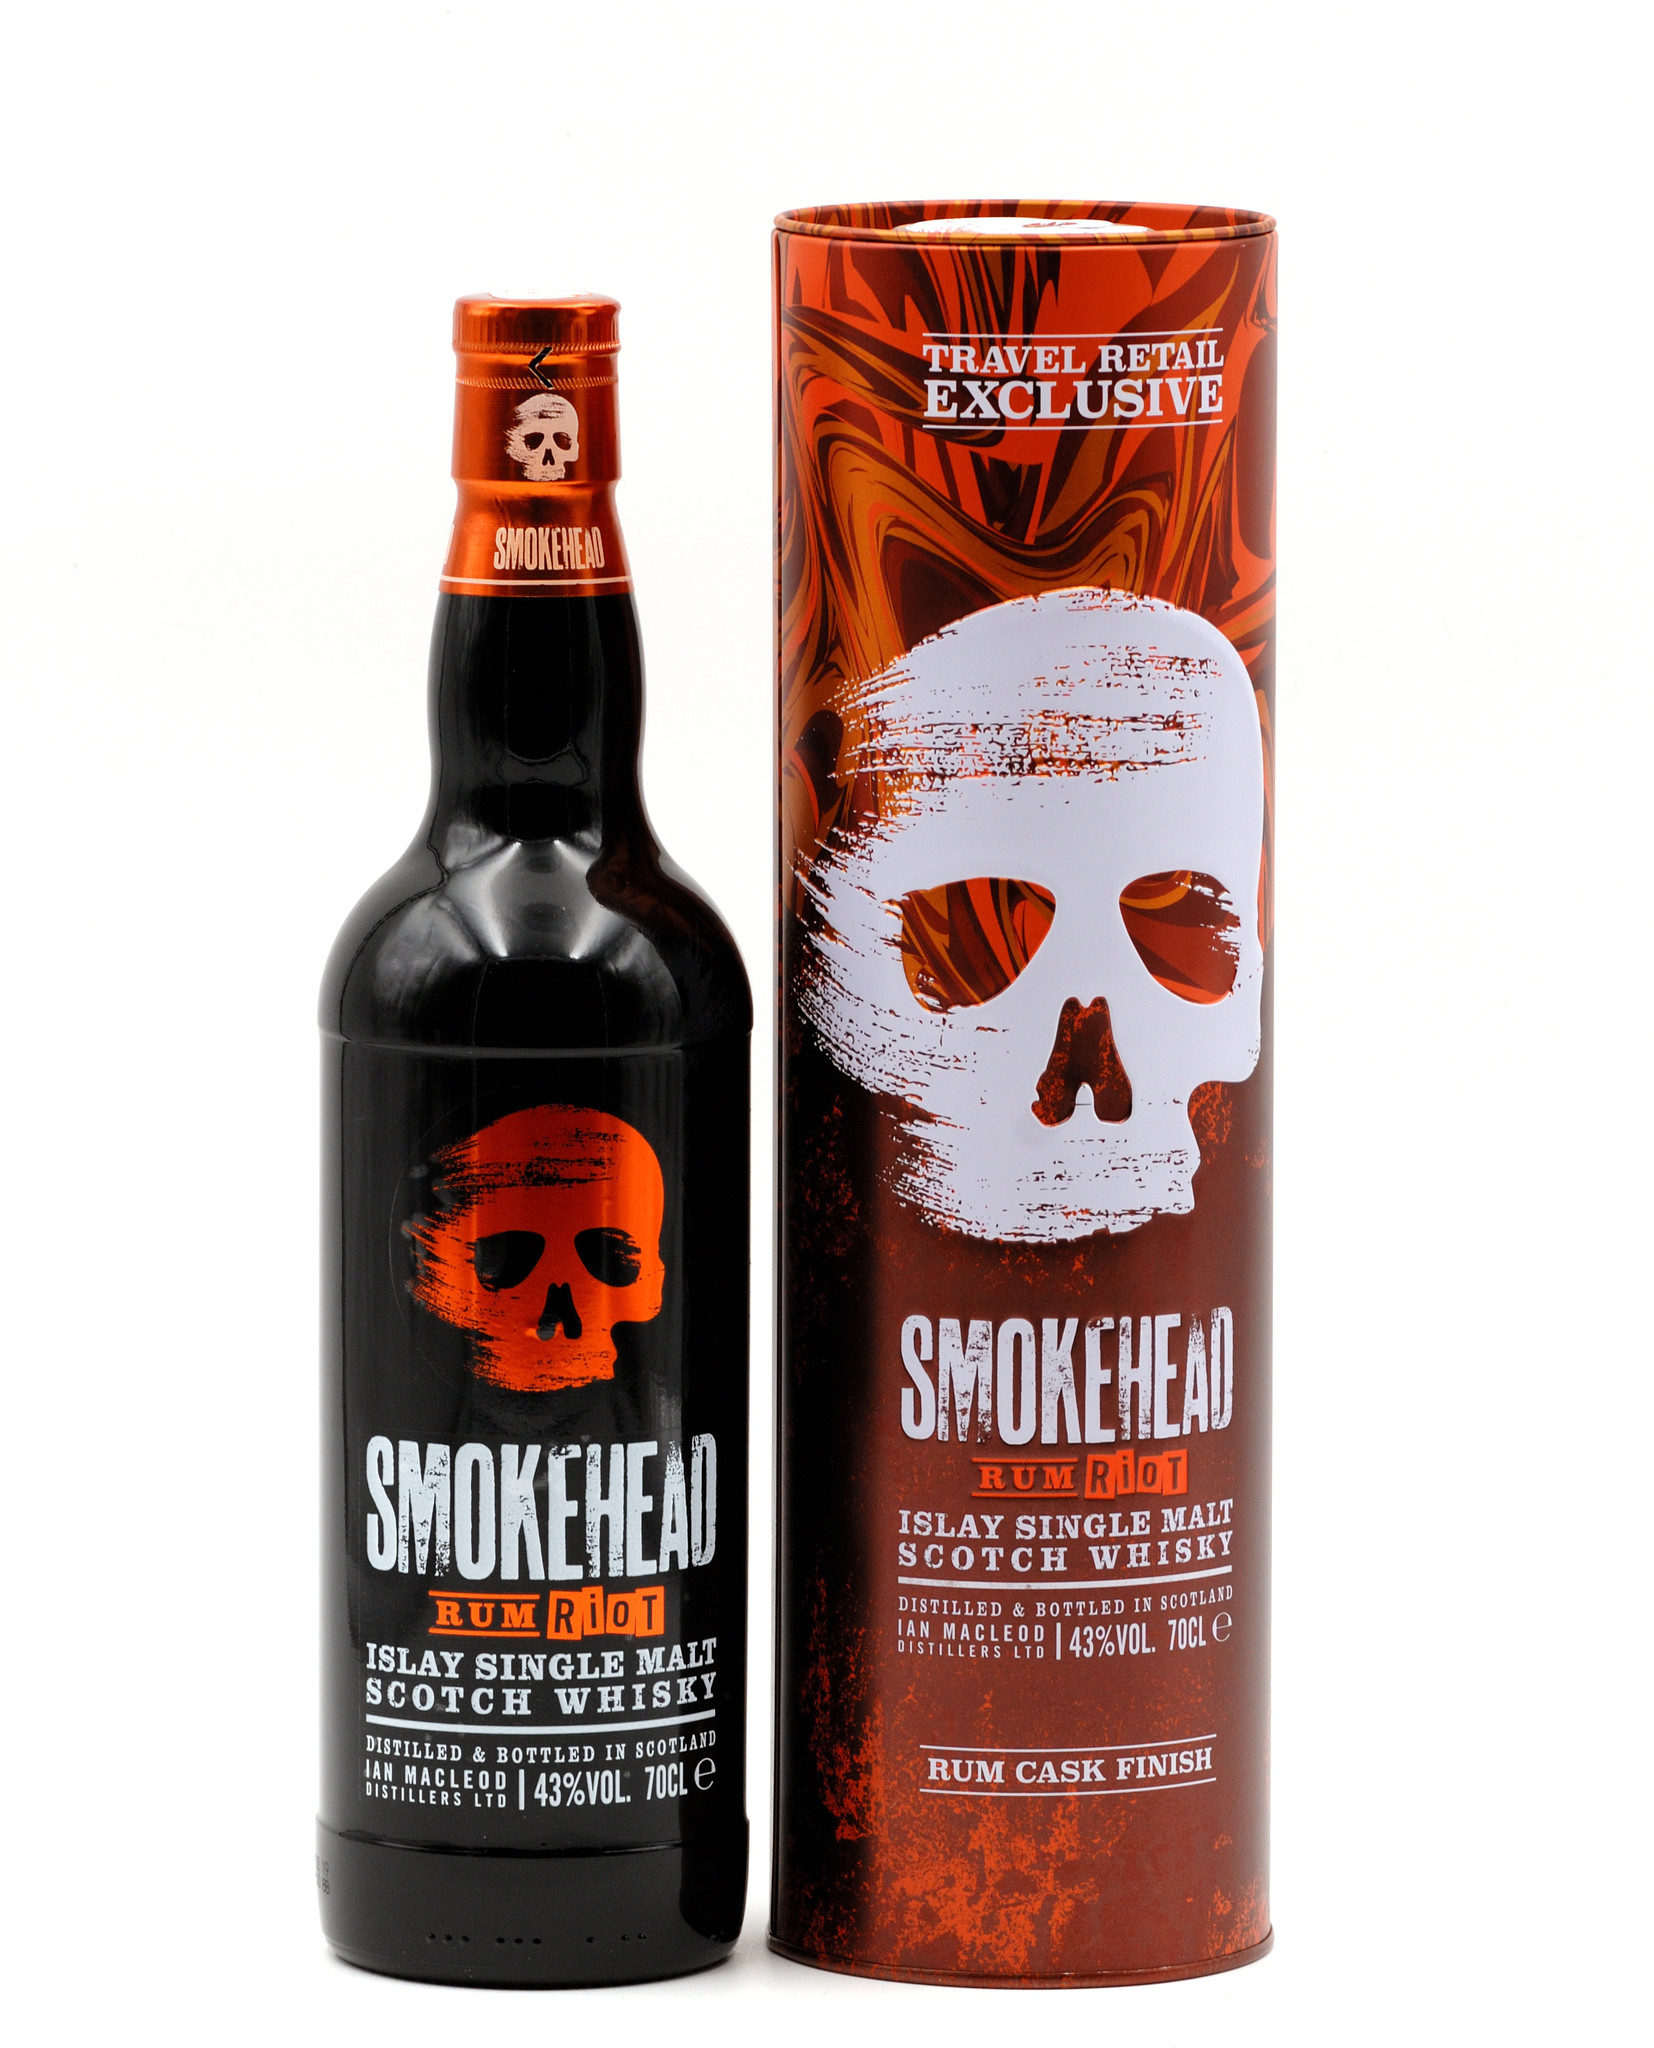 Neu im Travel Retail: Smokehead Rum Riot